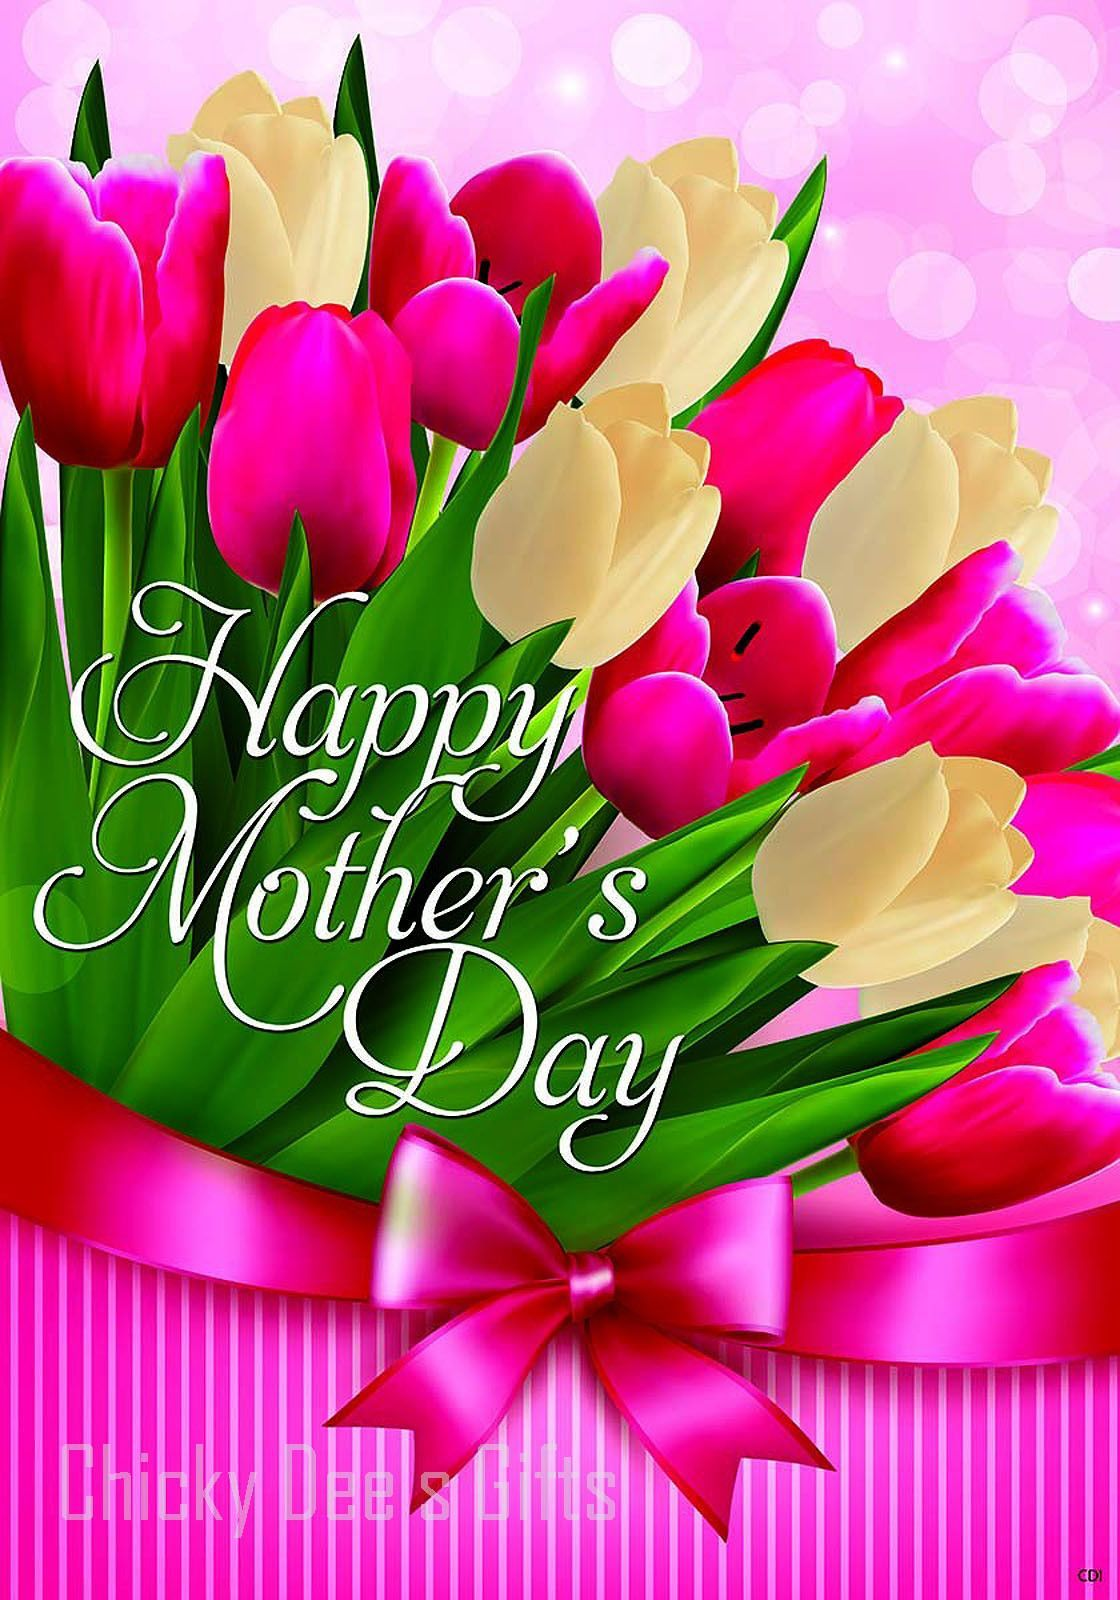 Love You Mom happy Mother's Day Wishes Images